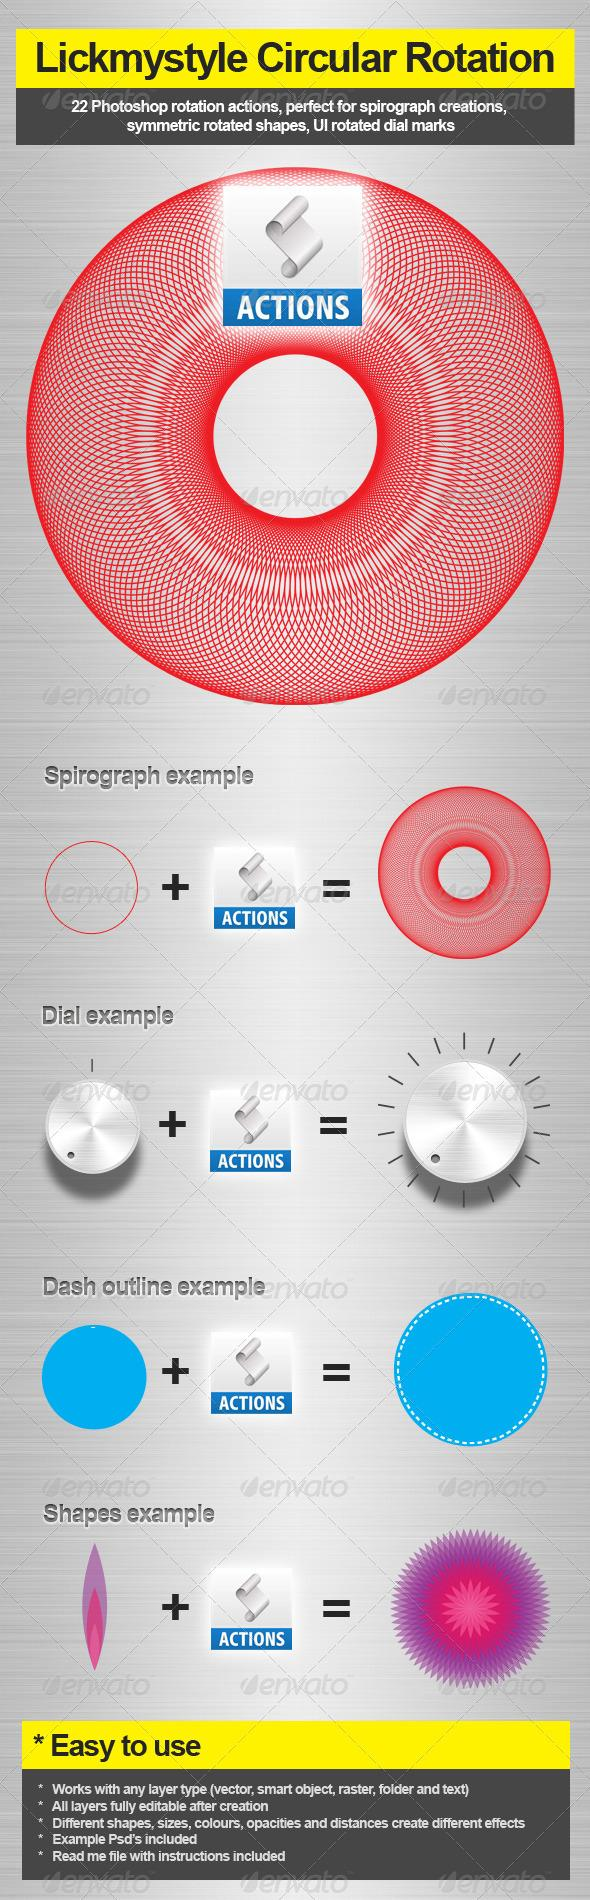 Add-ons - Circular Rotation Action | GraphicRiver